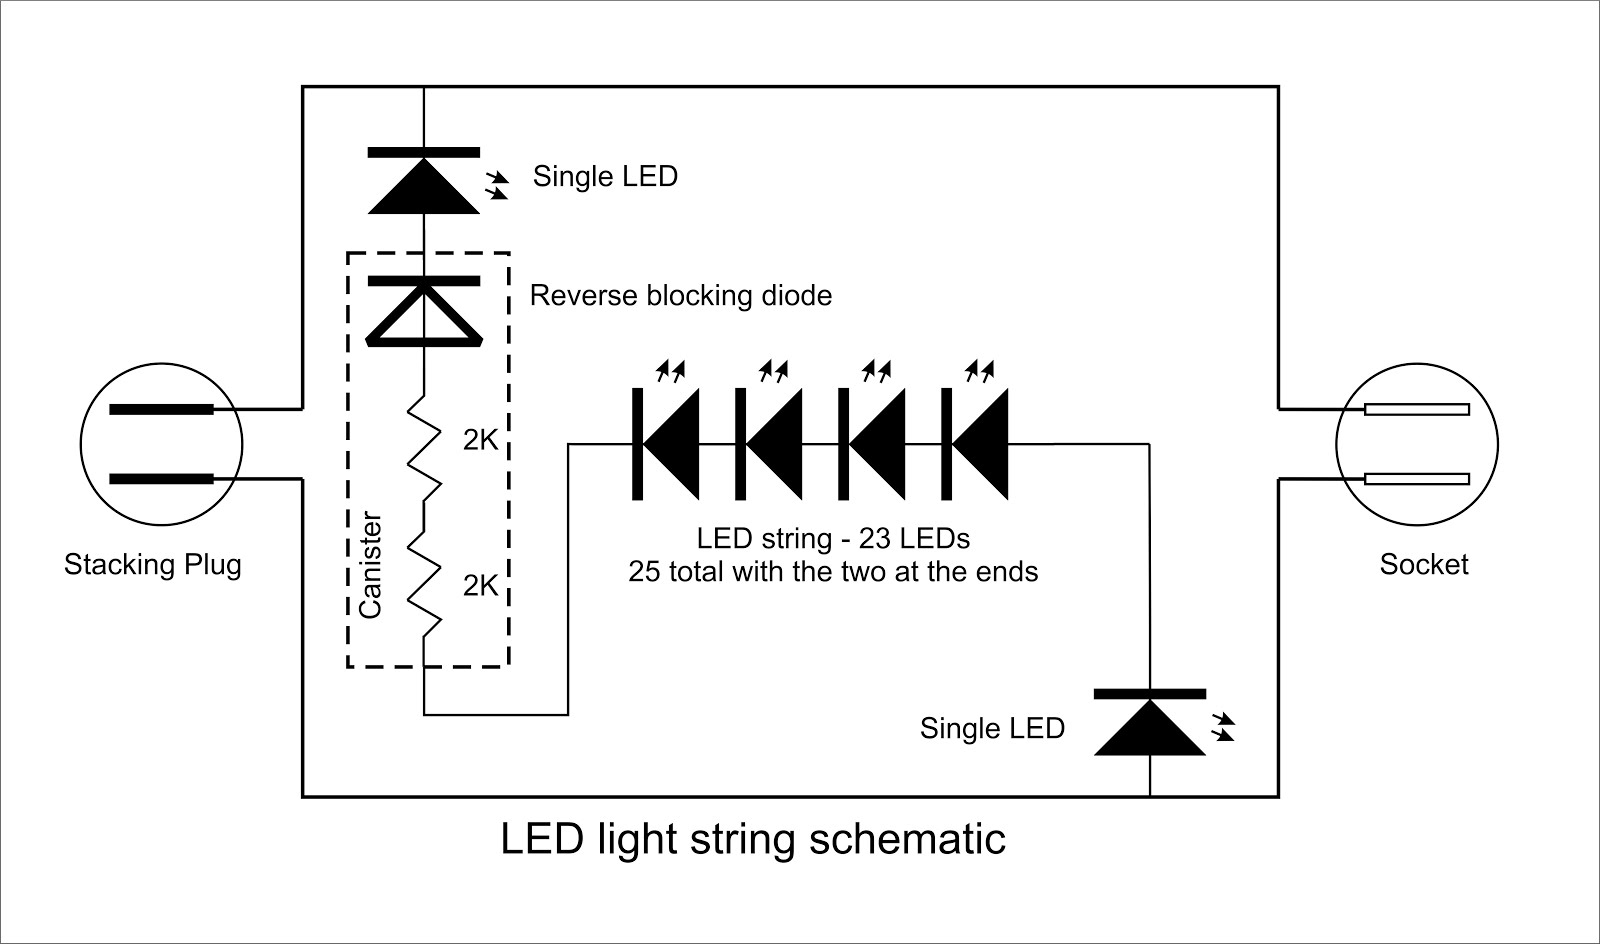 C9 Led Christmas Light Wiring Diagram moreover 2 L T8 Ballast Wiring Diagram moreover Wiring Diagram For 3 Wire Christmas Lights moreover Christmas Light Wiring Diagram 3 Wire together with Wiring Led Strip Lights. on christmas string light wiring three wire diagram